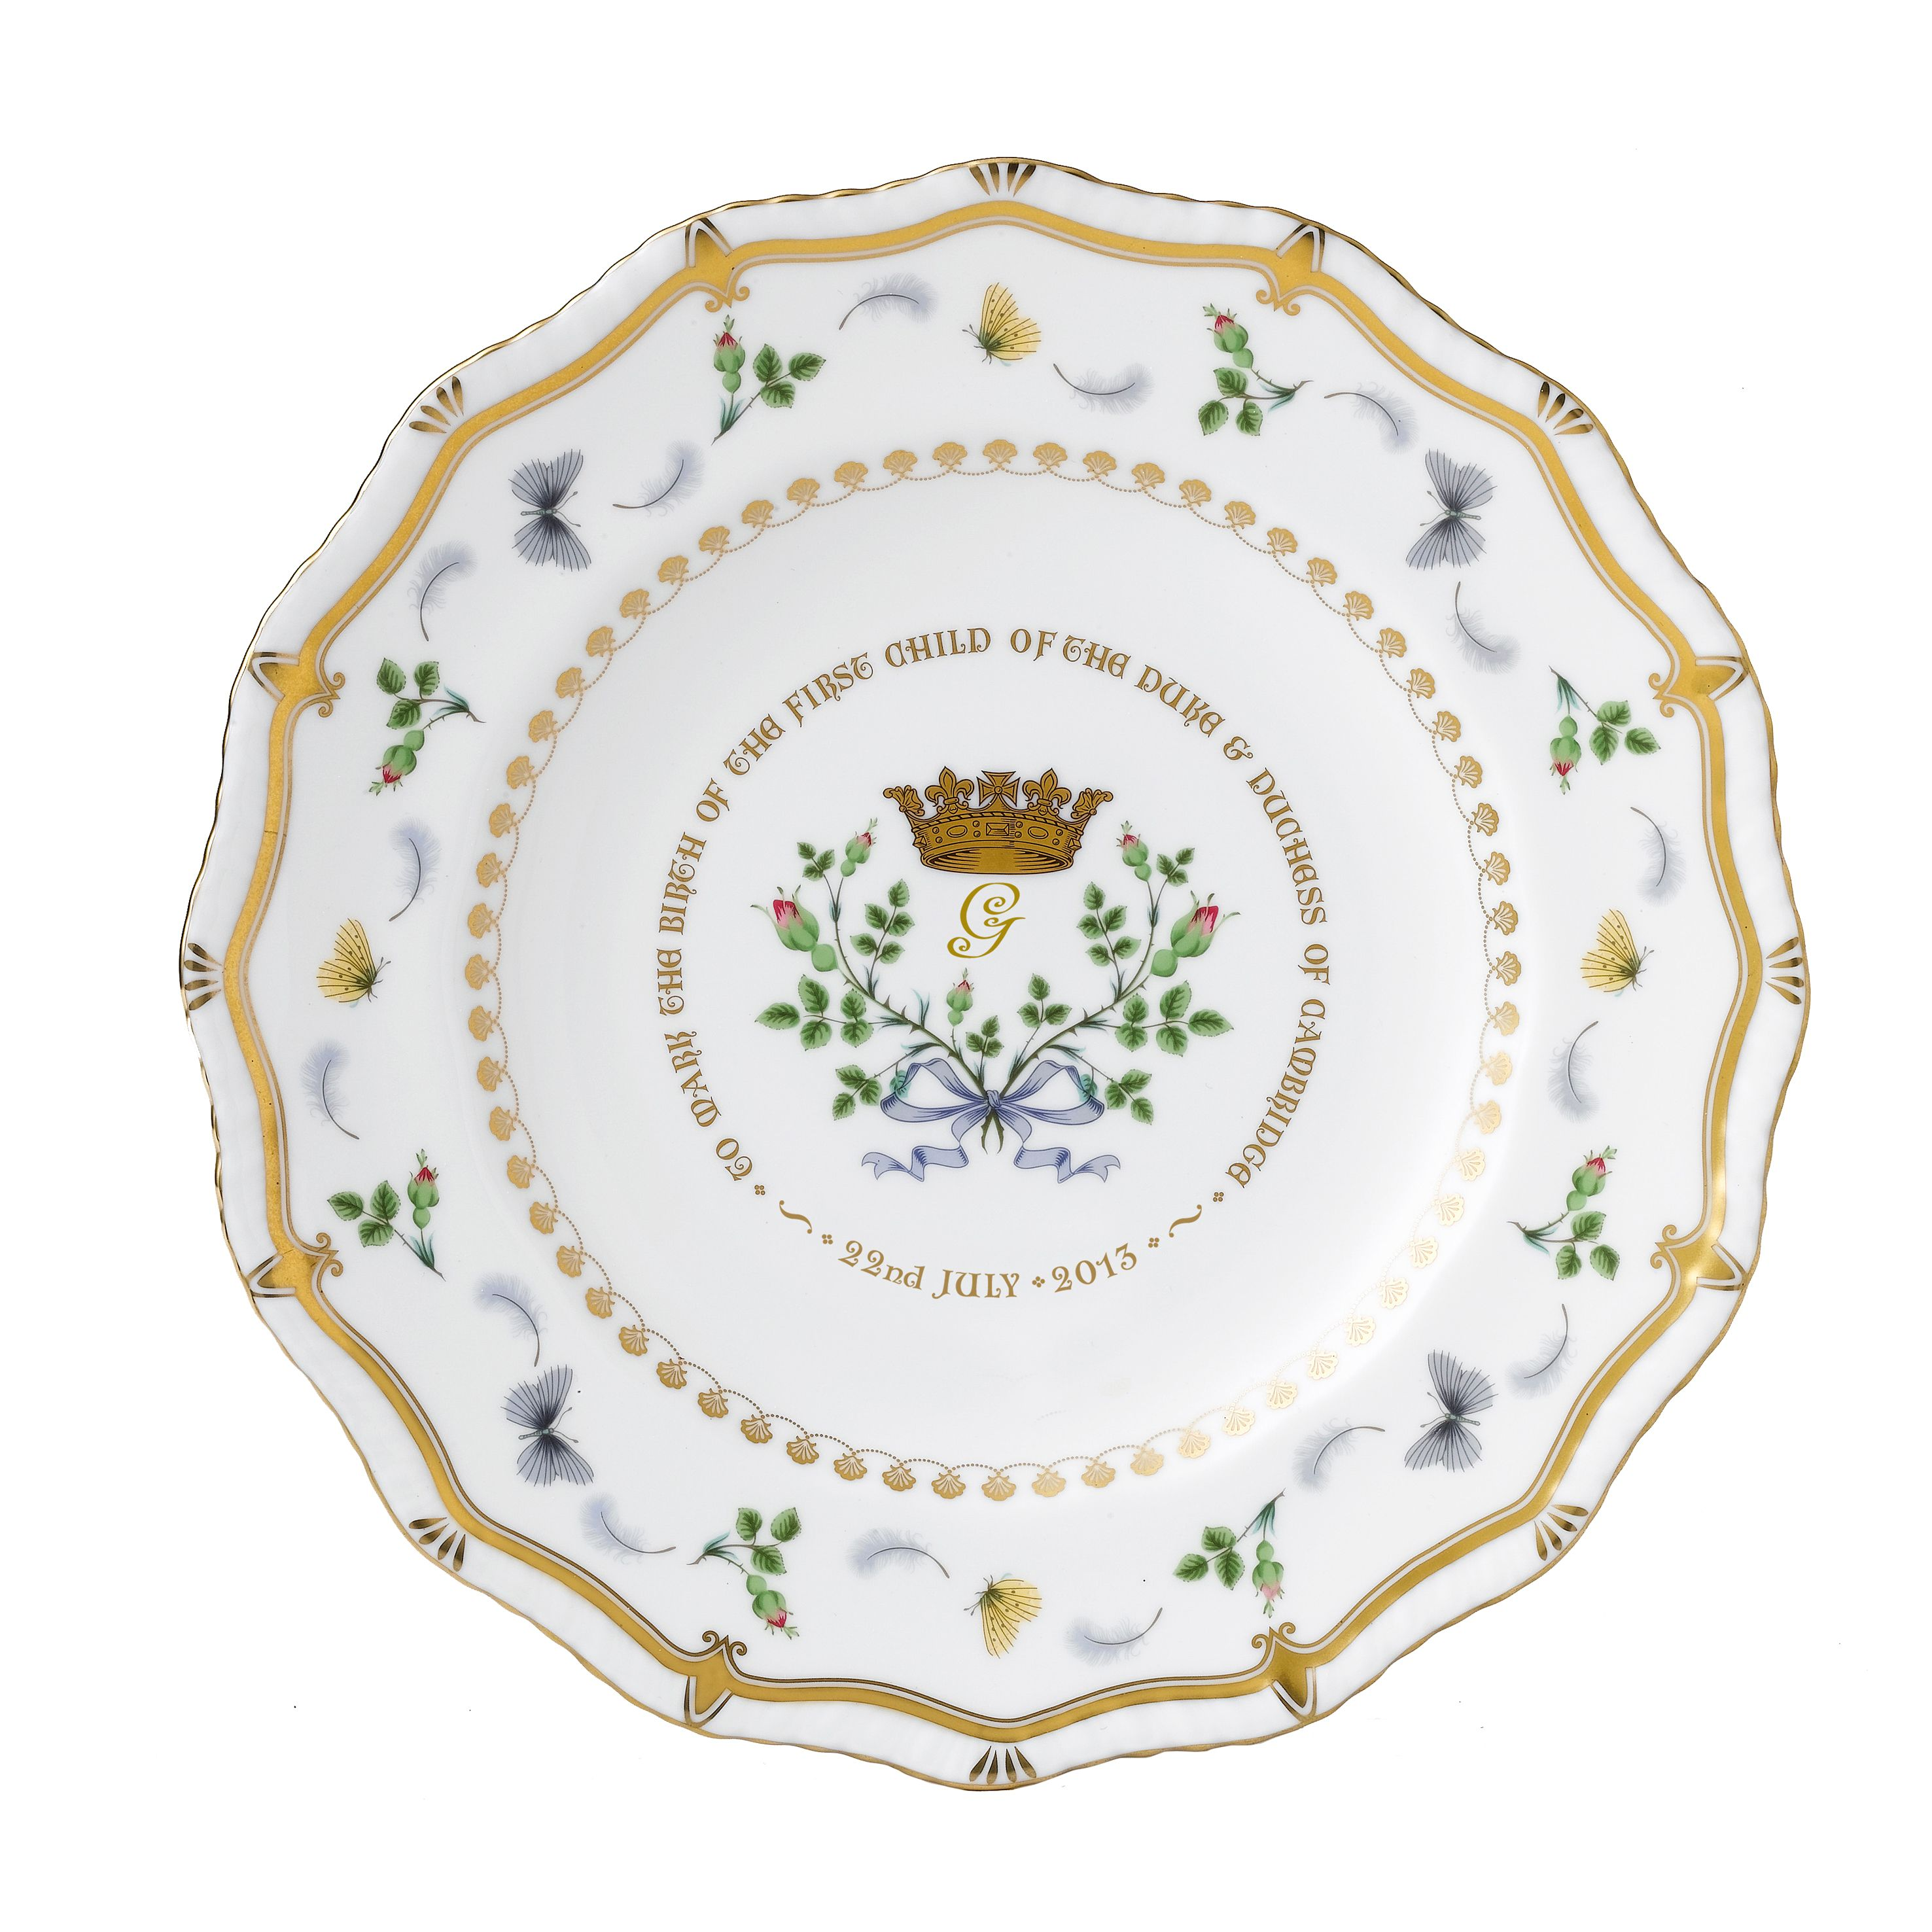 Royal Crown Derby Royal Crown Derby Gadroon plate limited edition